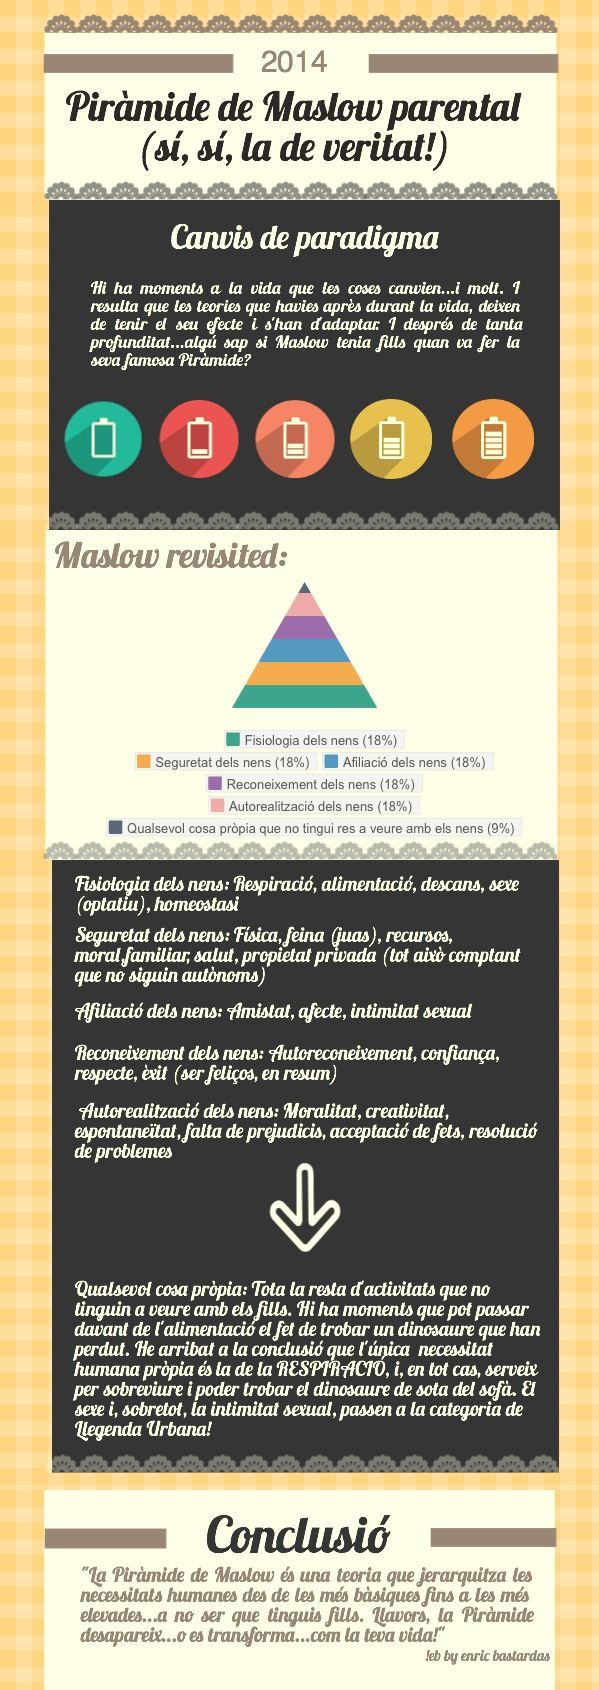 Maslow revisited